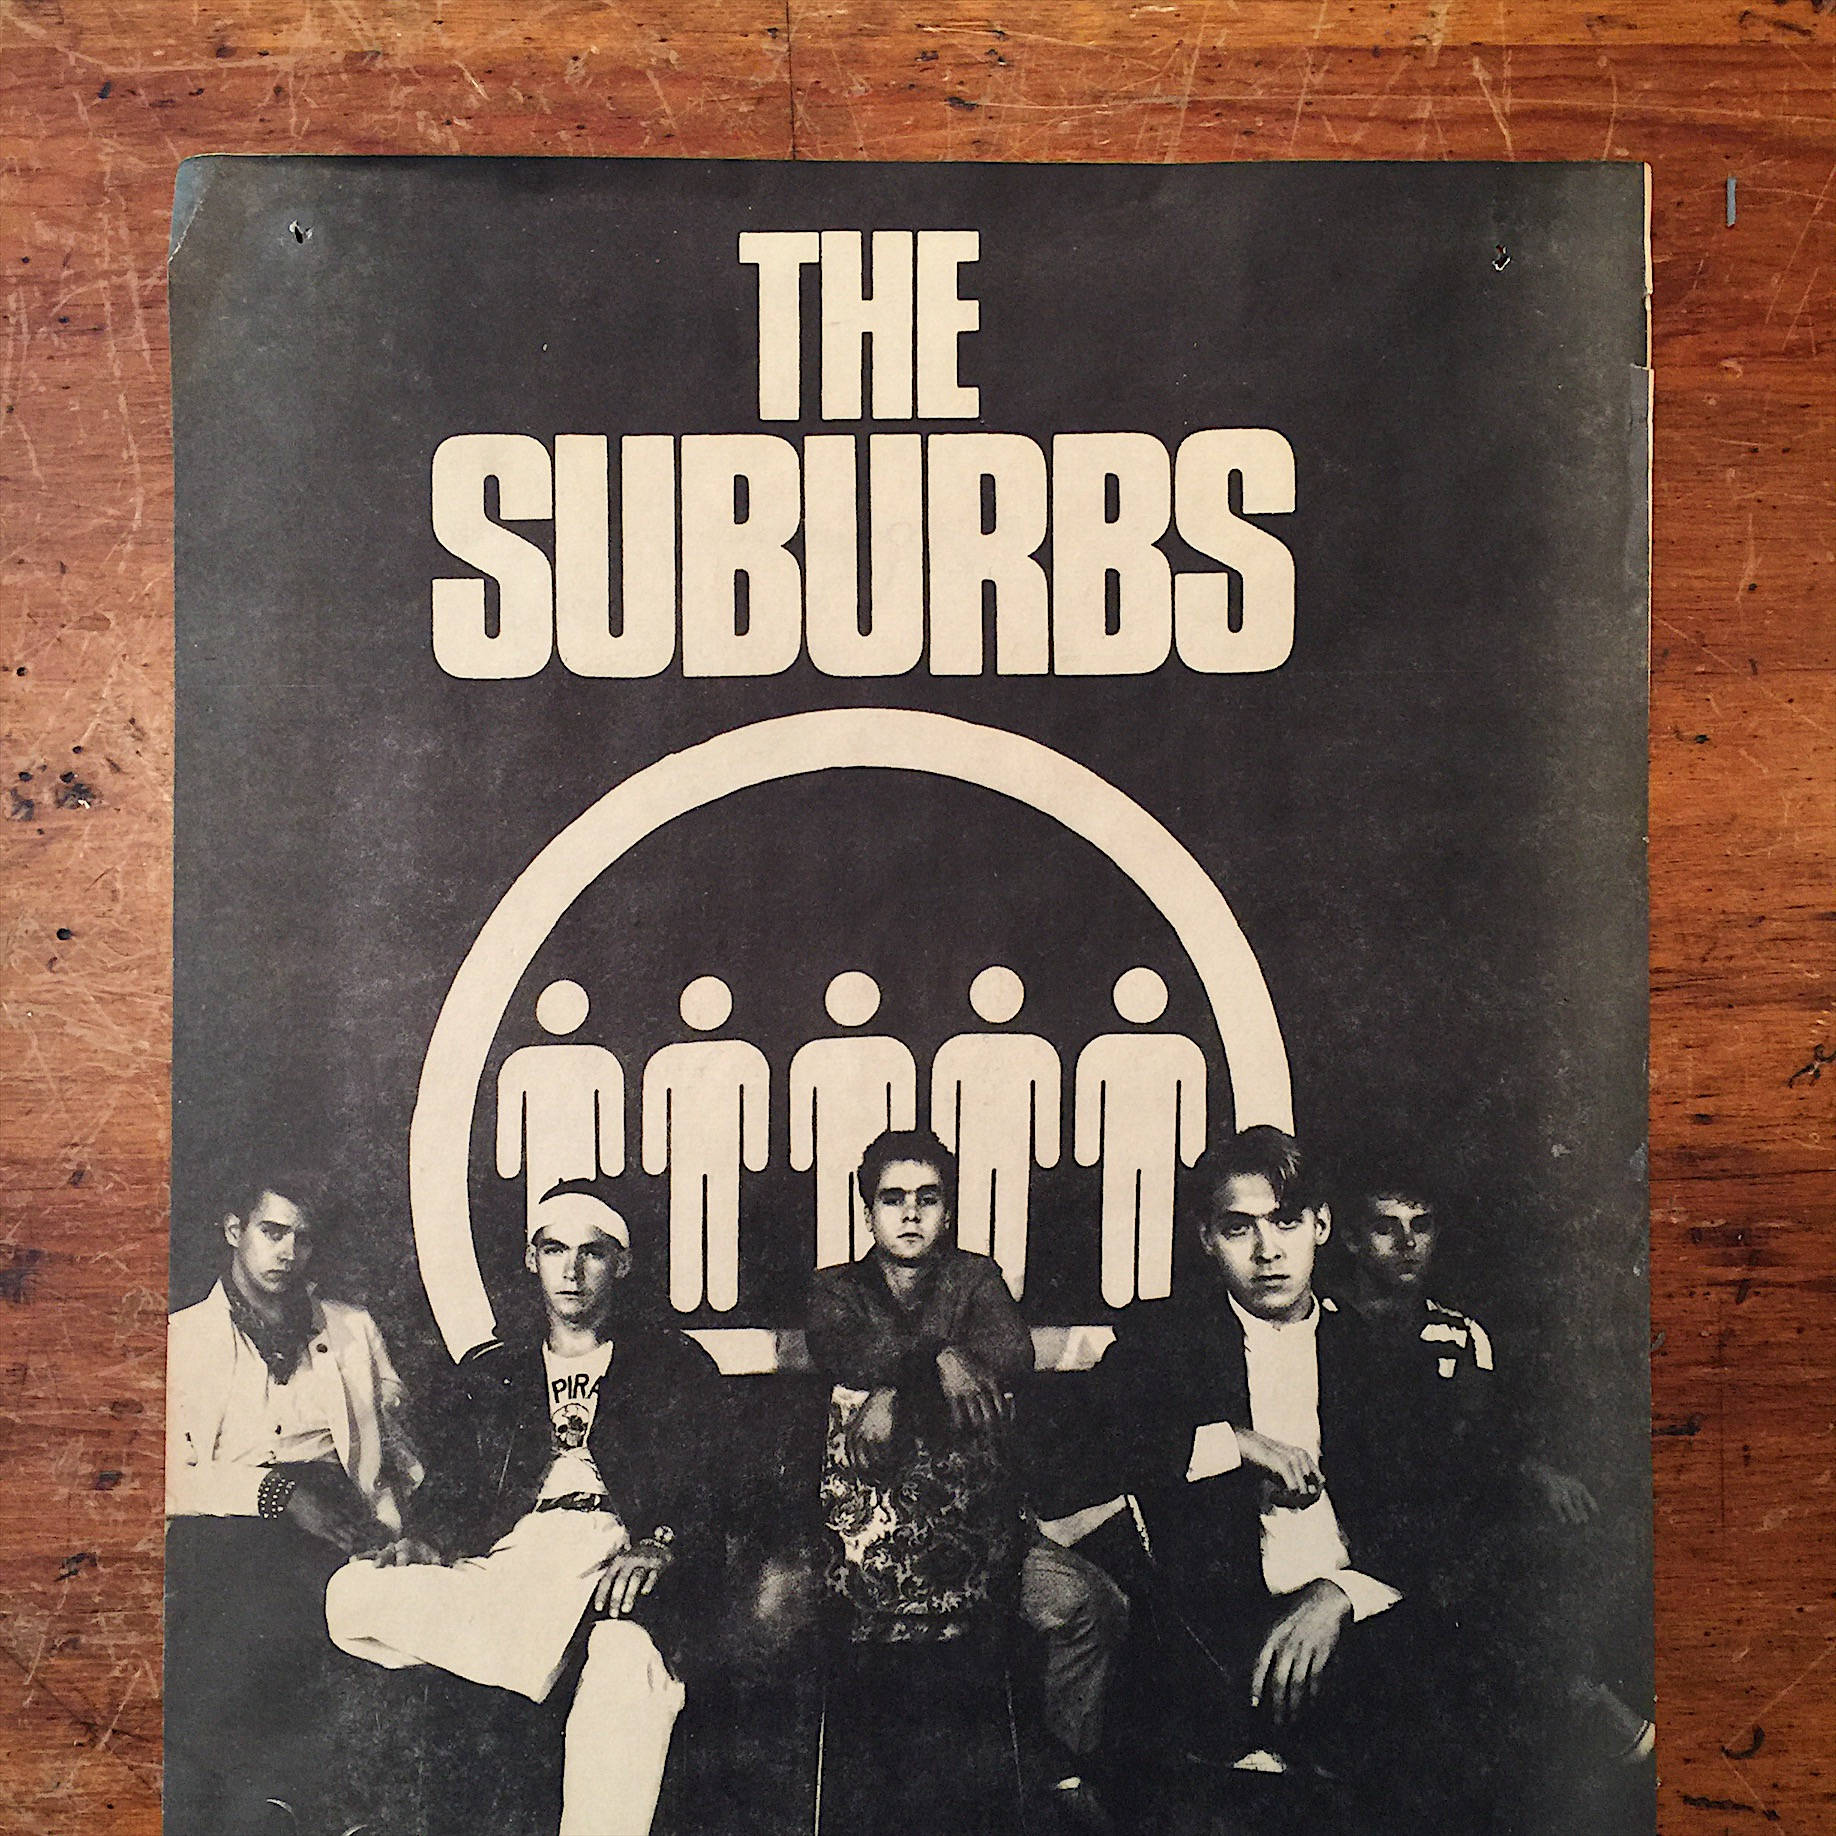 "The Suburbs Flyer Poster - Minneapolis Scene - Vintage 80s Suburbs Poster - Rare Rock Poster - 17"" x 10 1/2"" - Vintage Music Posters"